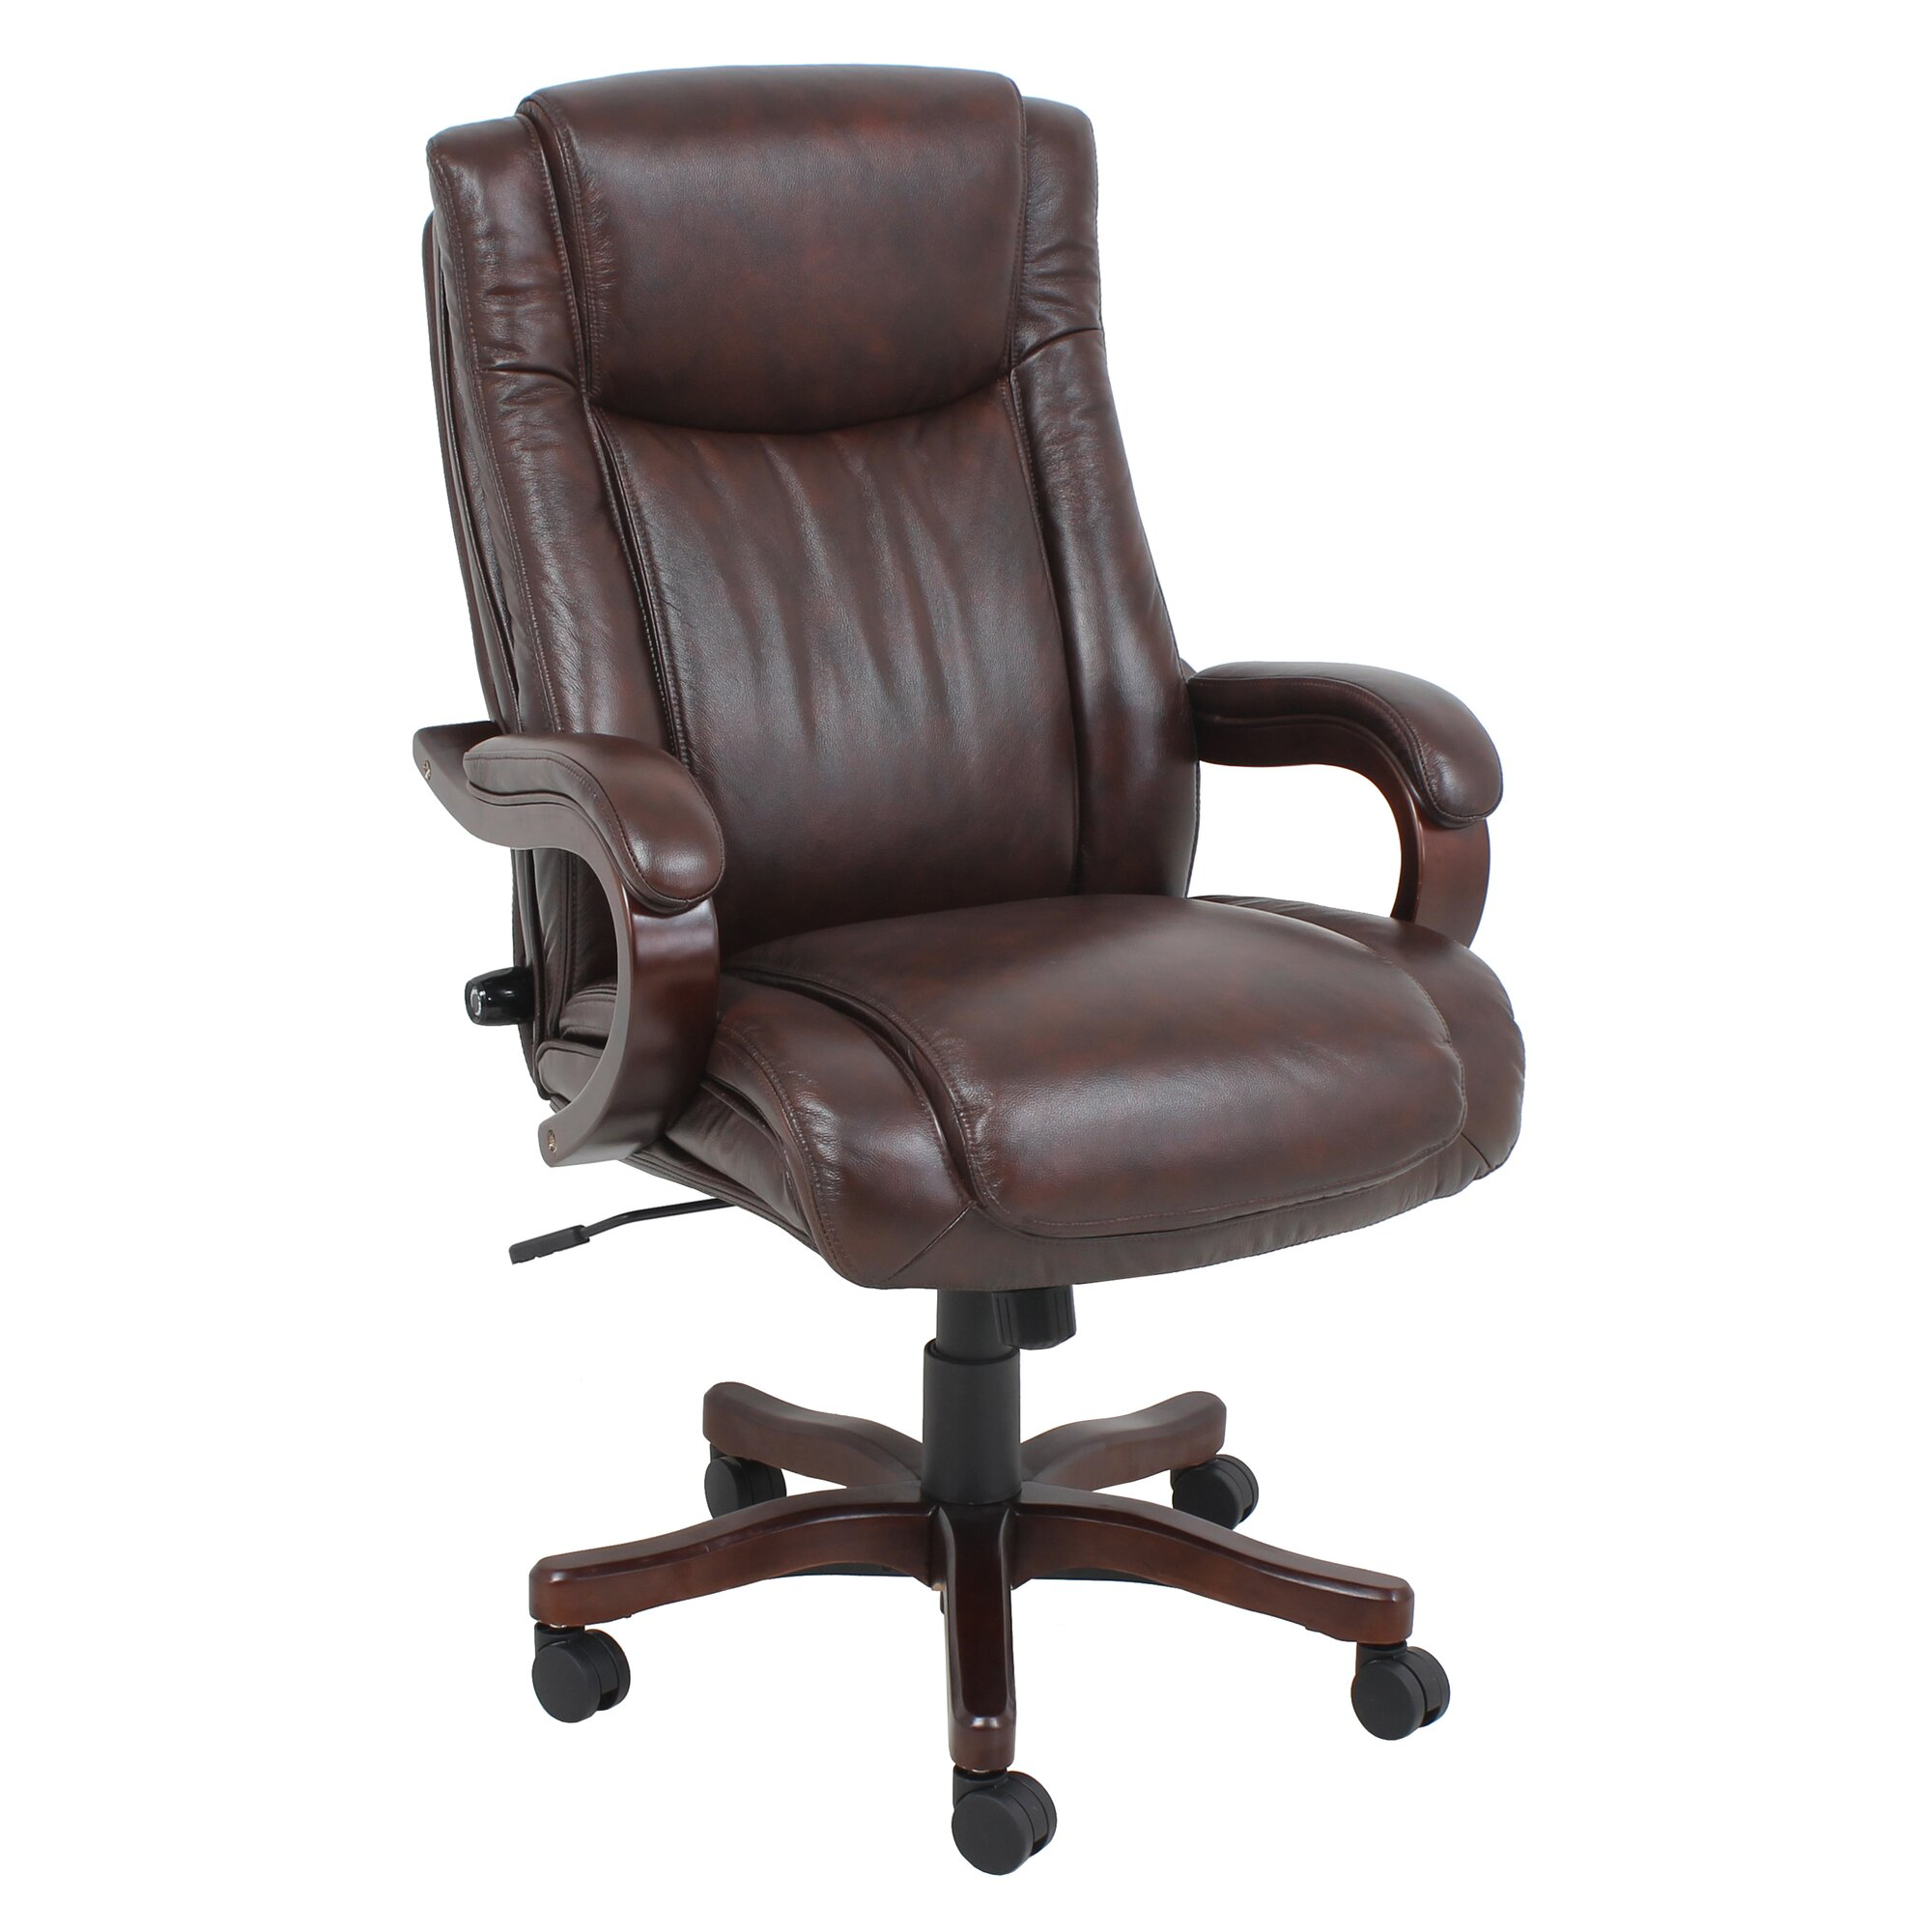 Tan leather office chair - Leather Executive Chair